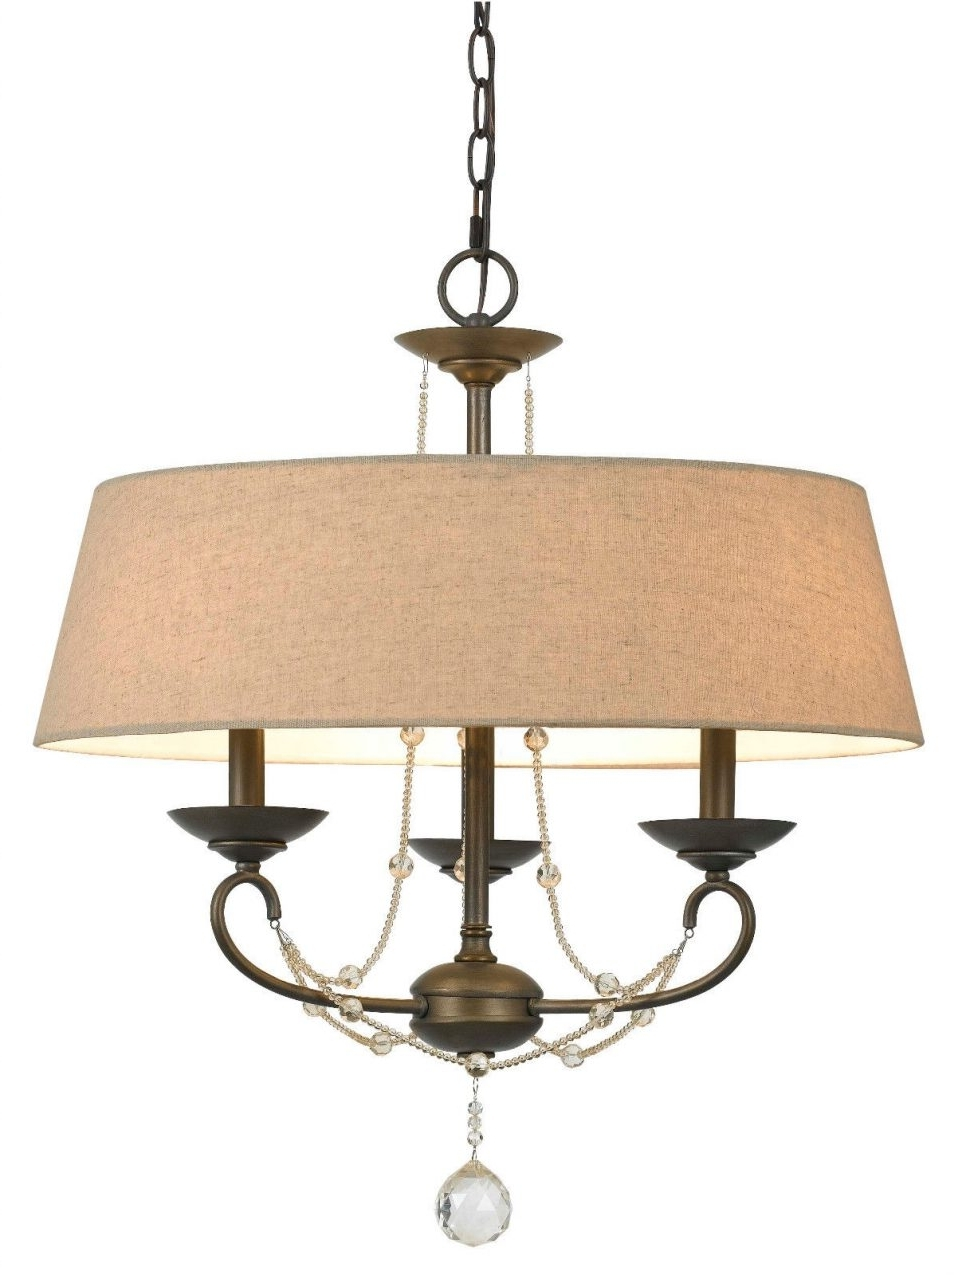 Small Chandelier Lamp Shades In Well Known Chandelier Lighting : J Wonderful Contemporary Lamp Shades For (View 15 of 20)